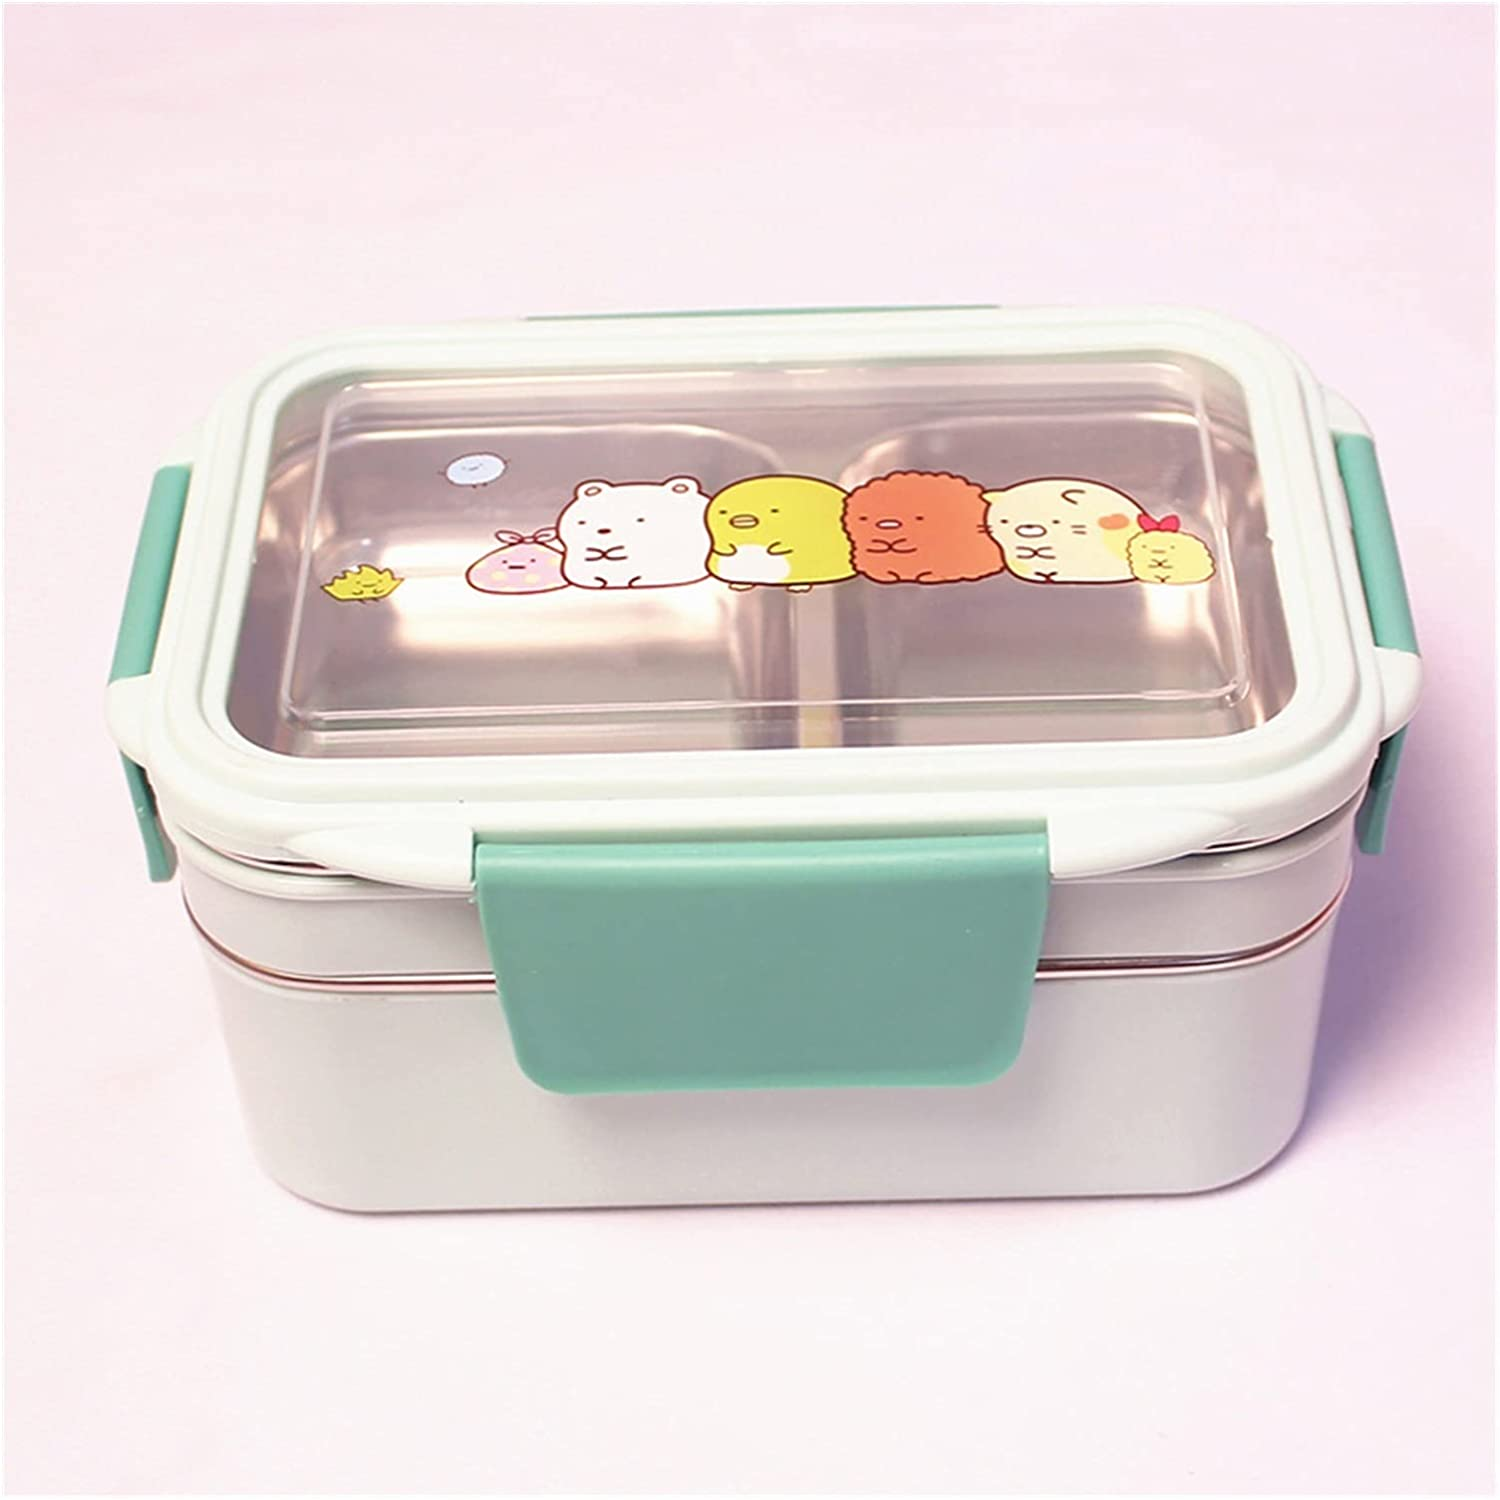 sold out Bento box supreme Stainless Steel Insulated Double-layer Square Student